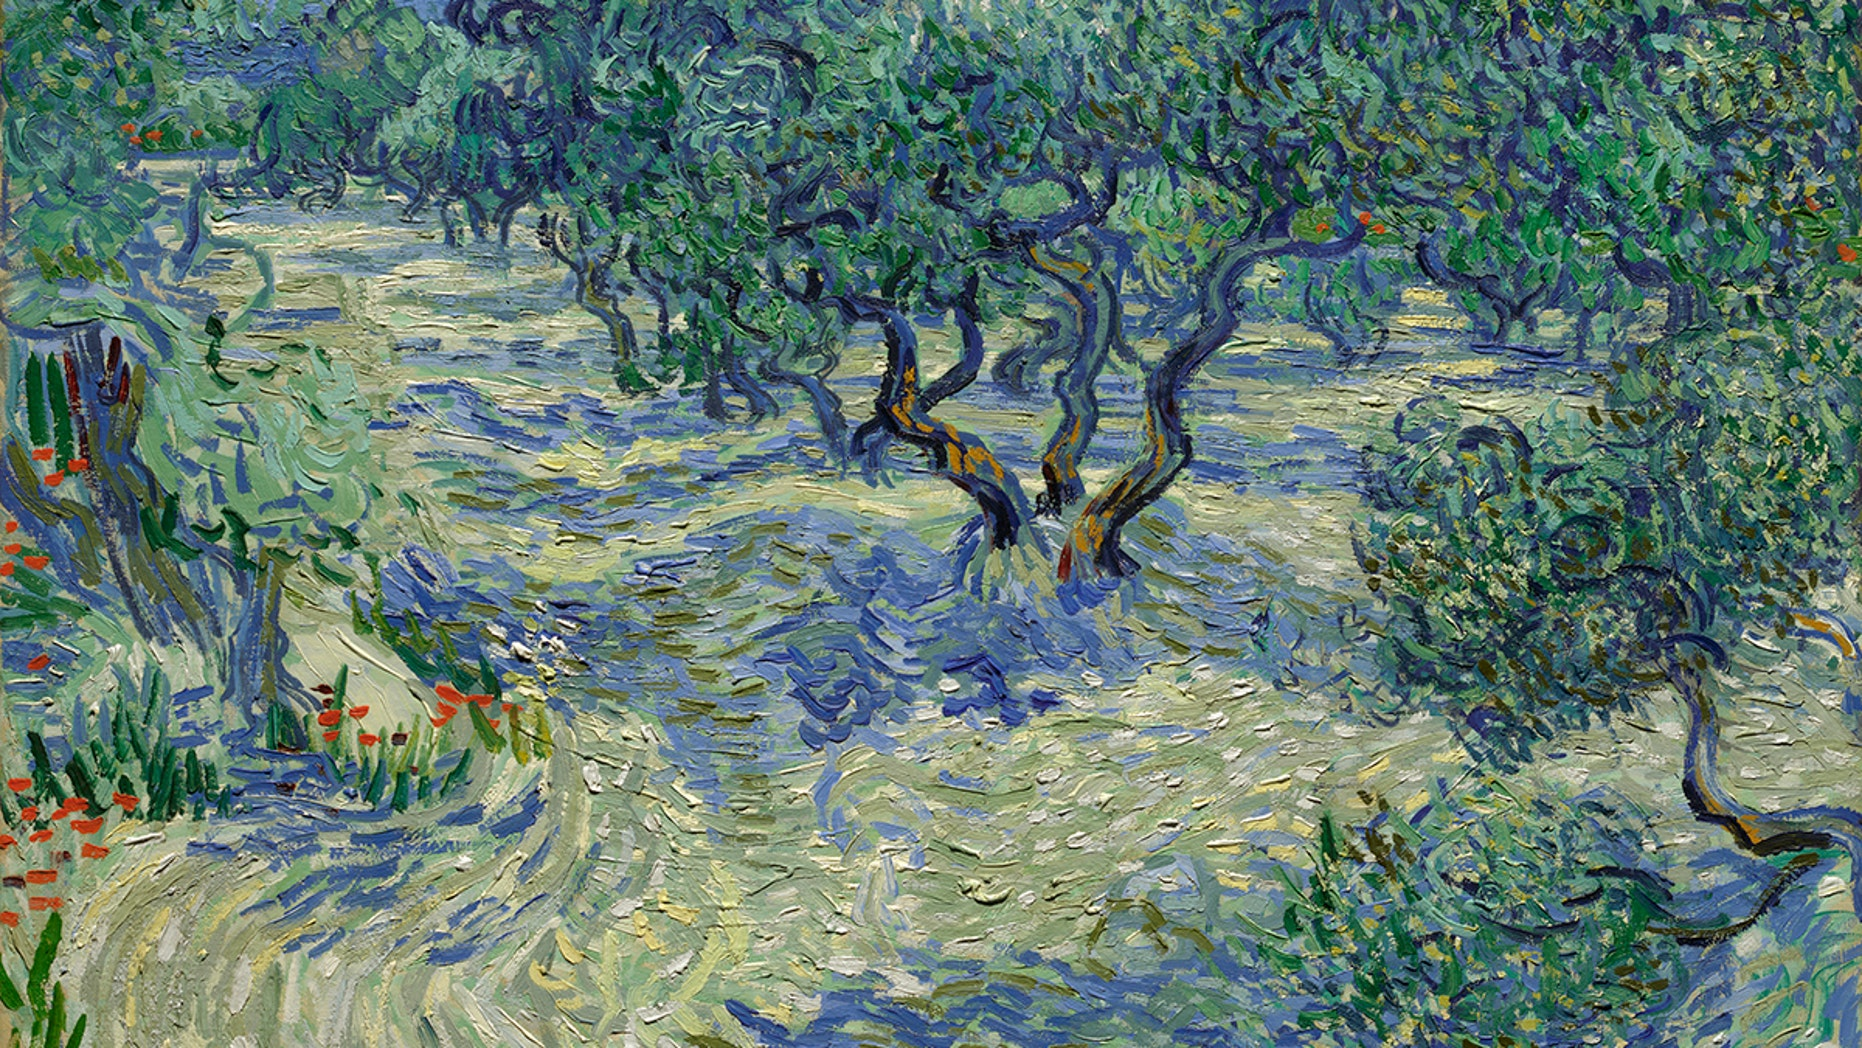 """You can't see the grasshopper in this image of Vincent van Gogh's """"Olive Trees,"""" but it's there."""